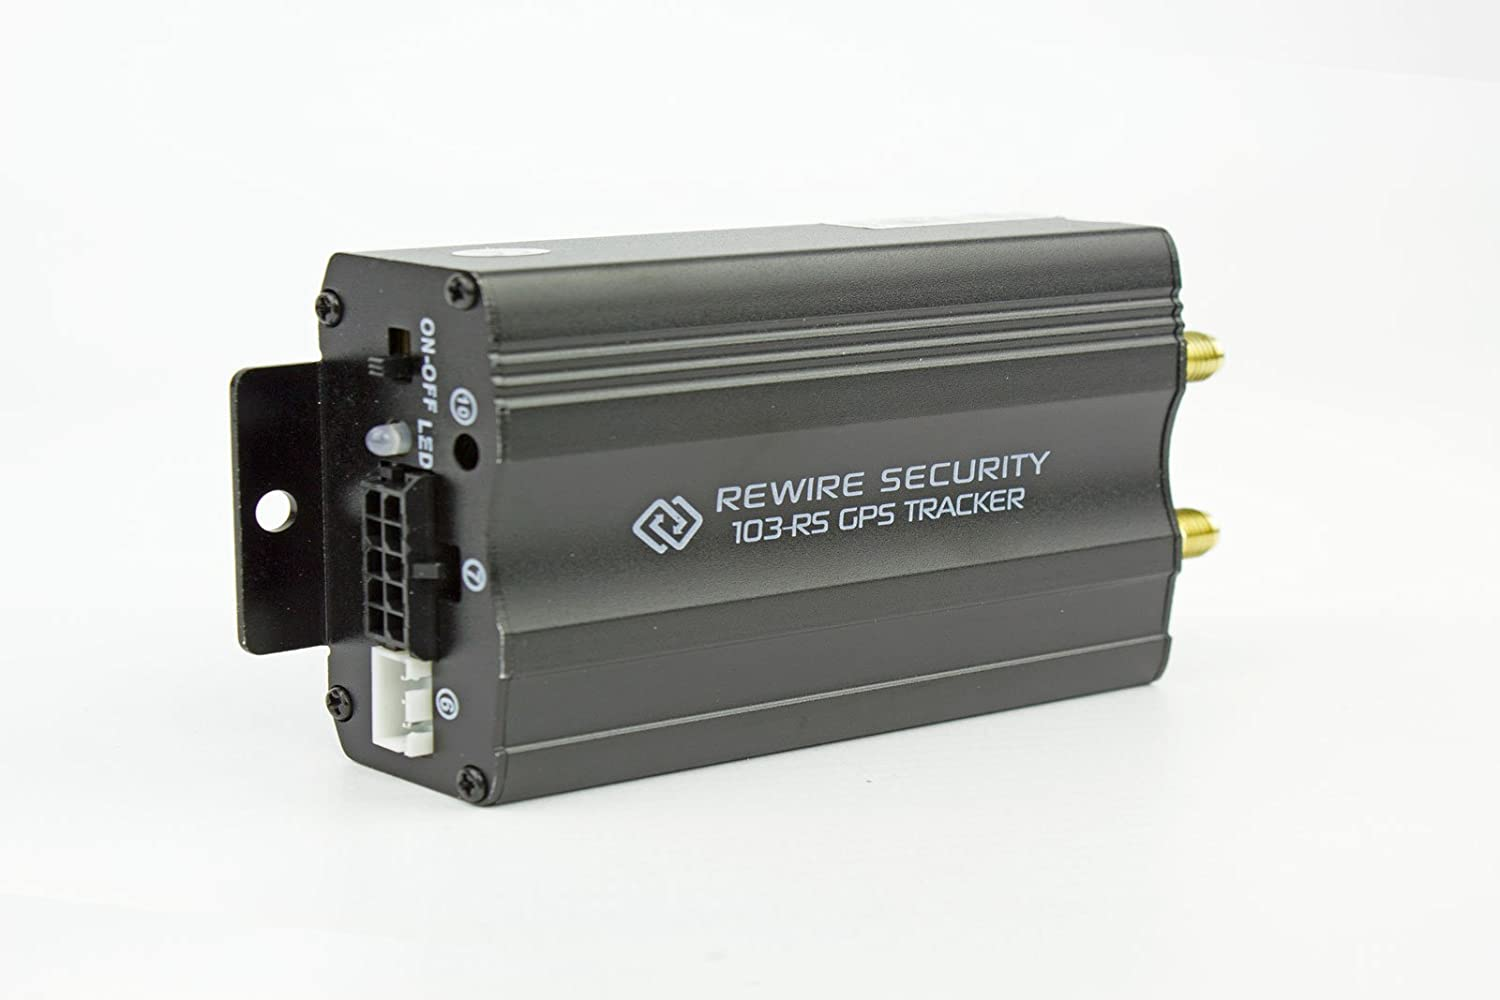 Vehicle Gps Tracker 103 Rs Rewire Security Fleet Tracking System Rewiring A House Cost Uk Tk103 Electronics